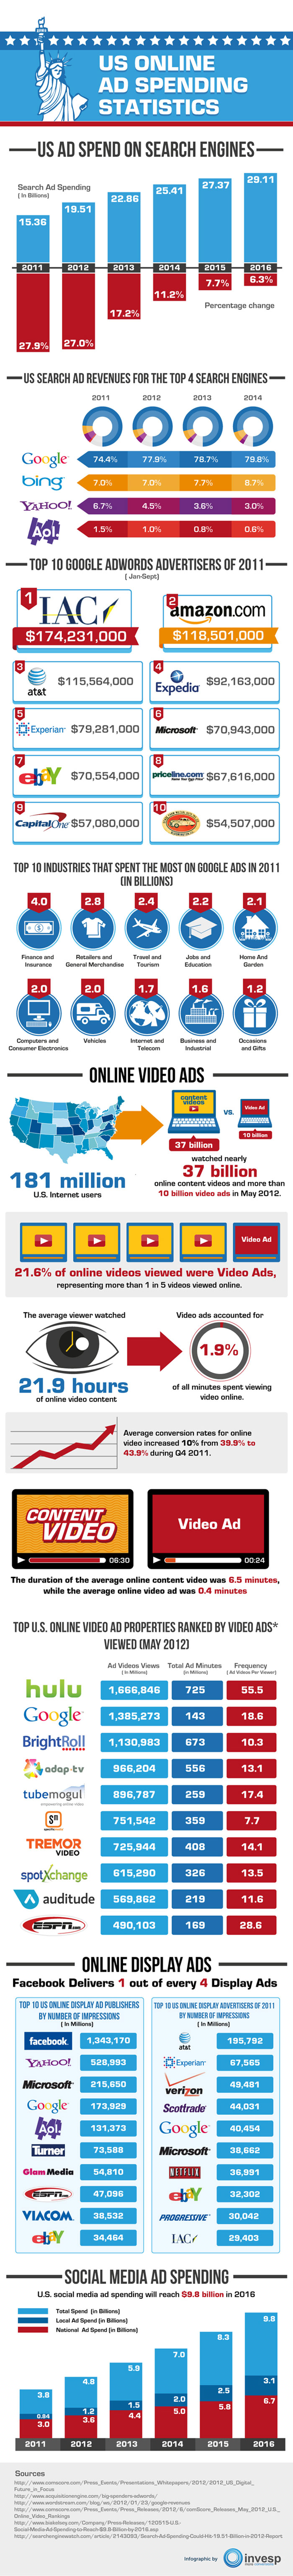 Online Advertising Statistics 2012 Infographic